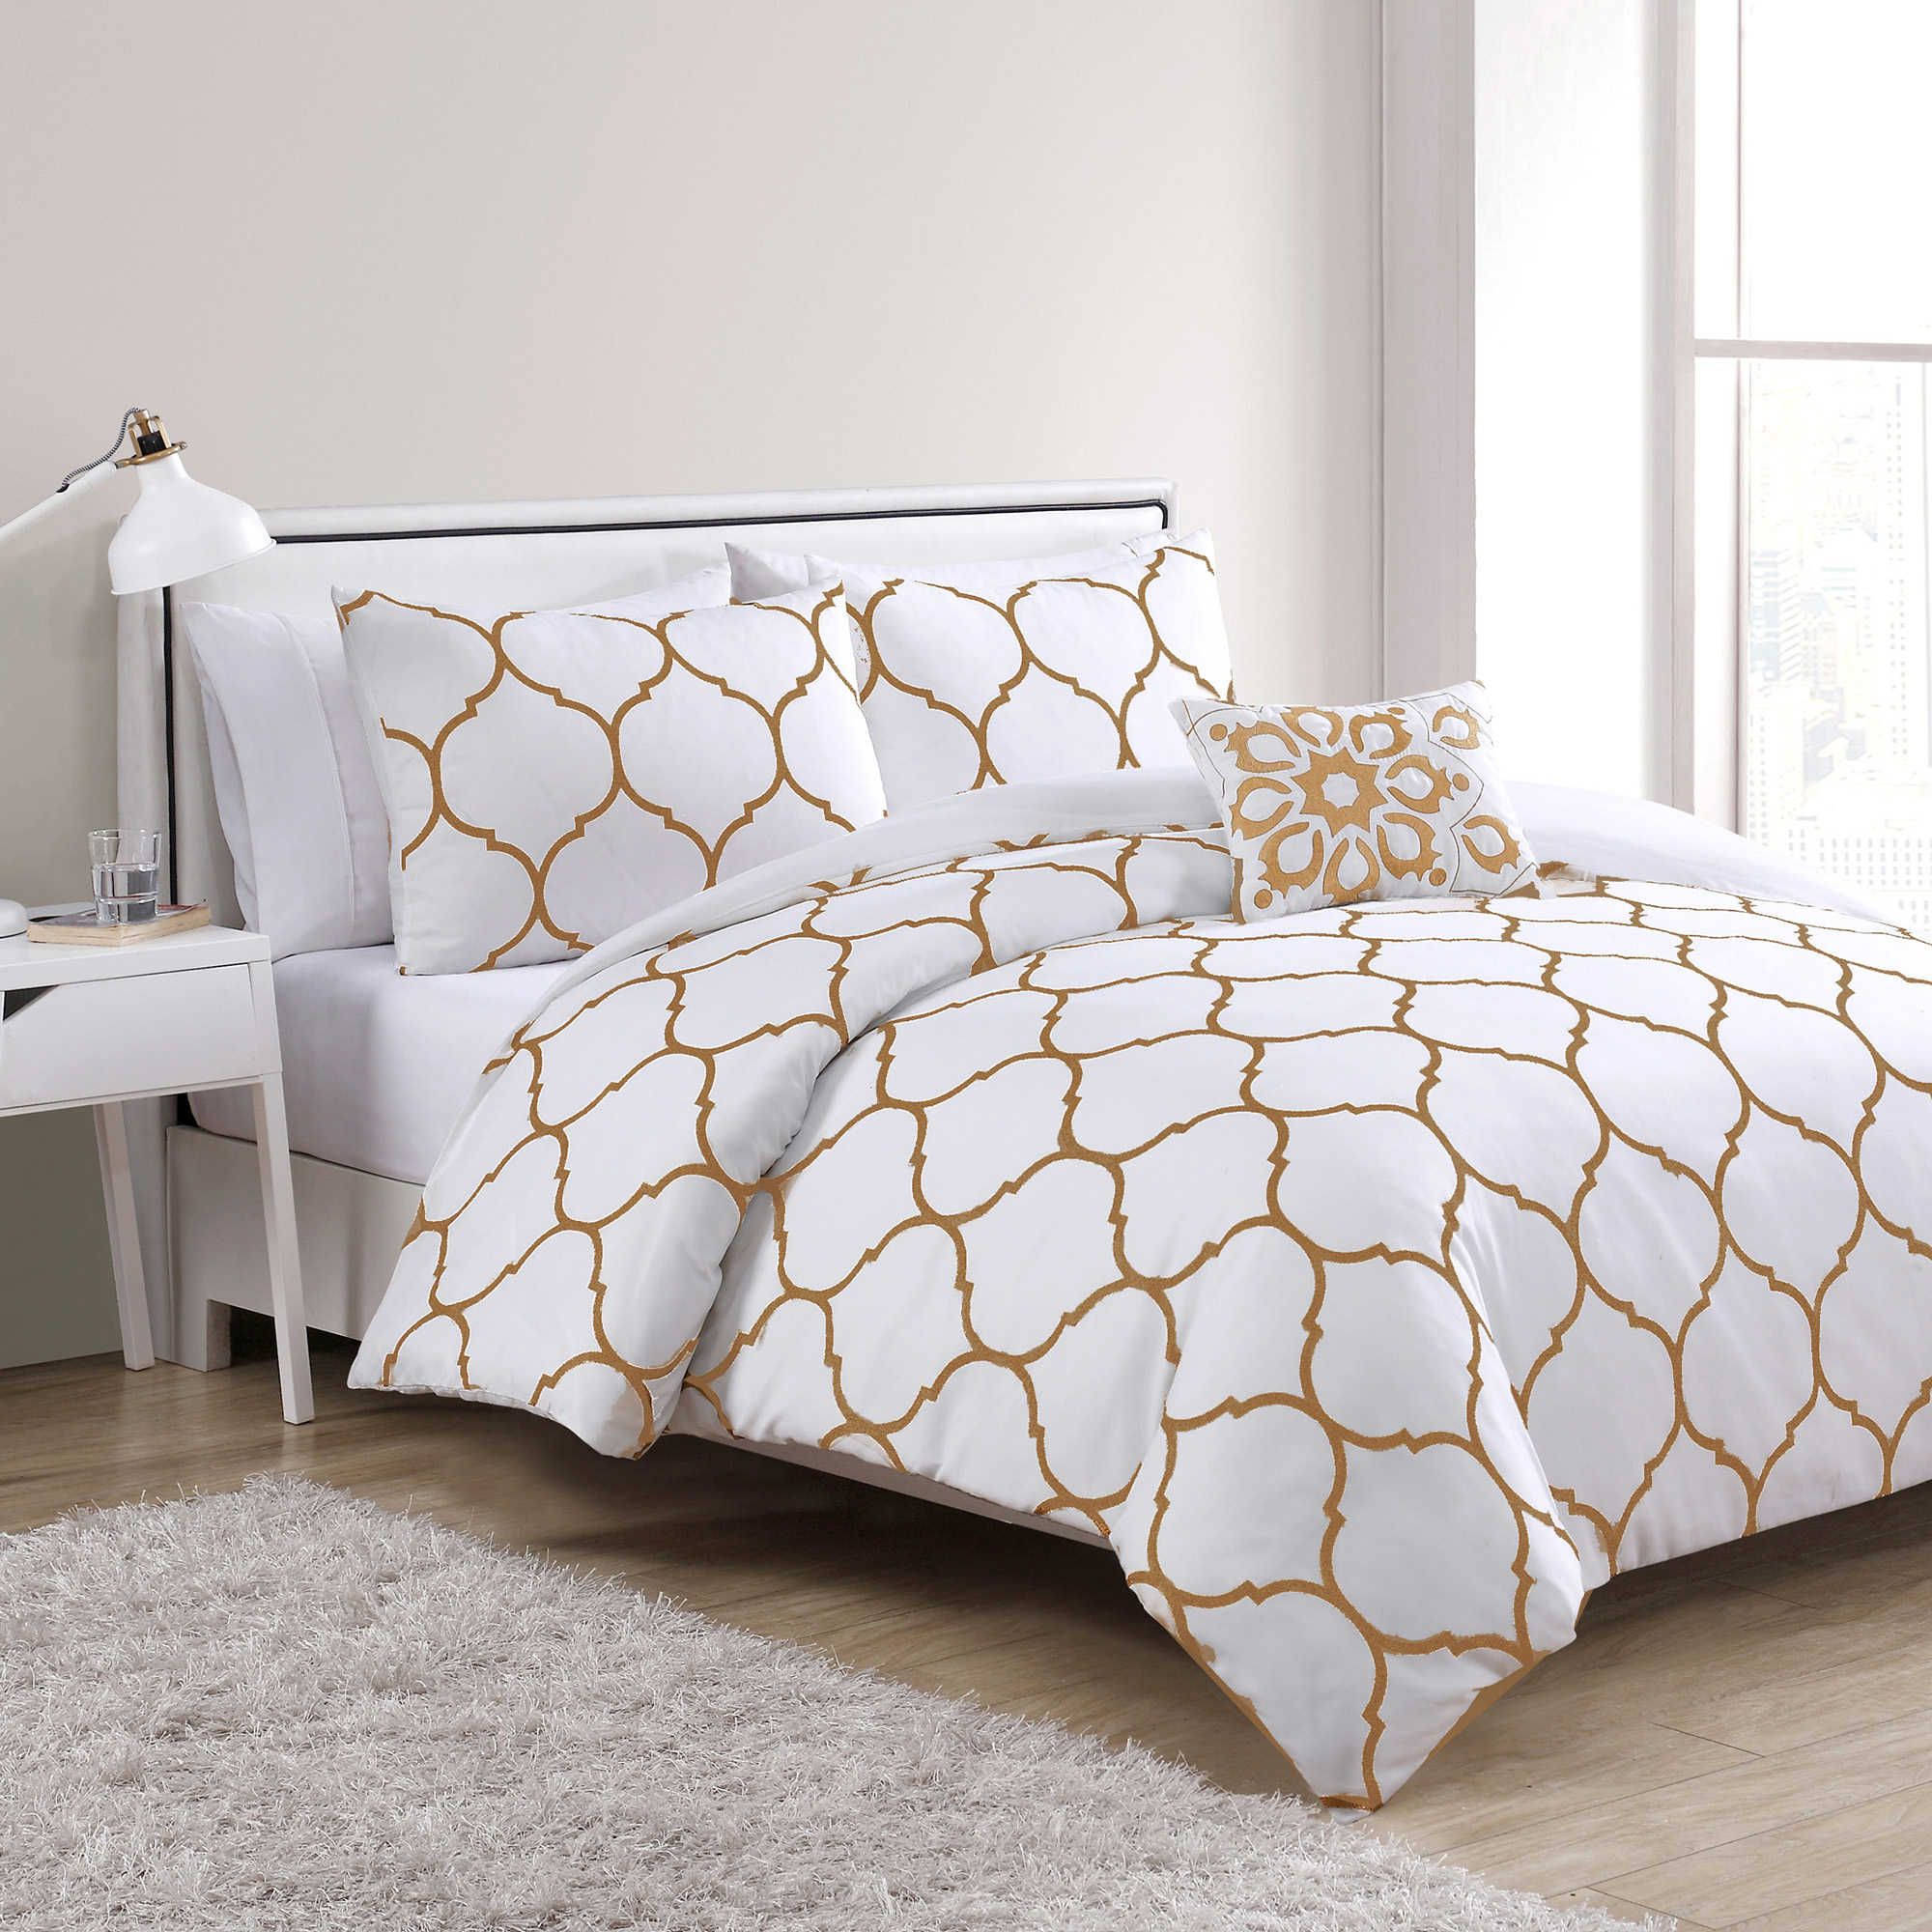 vcny ogee 4 piece full queen comforter set in gold white apartment bedroom ideas in 2019. Black Bedroom Furniture Sets. Home Design Ideas